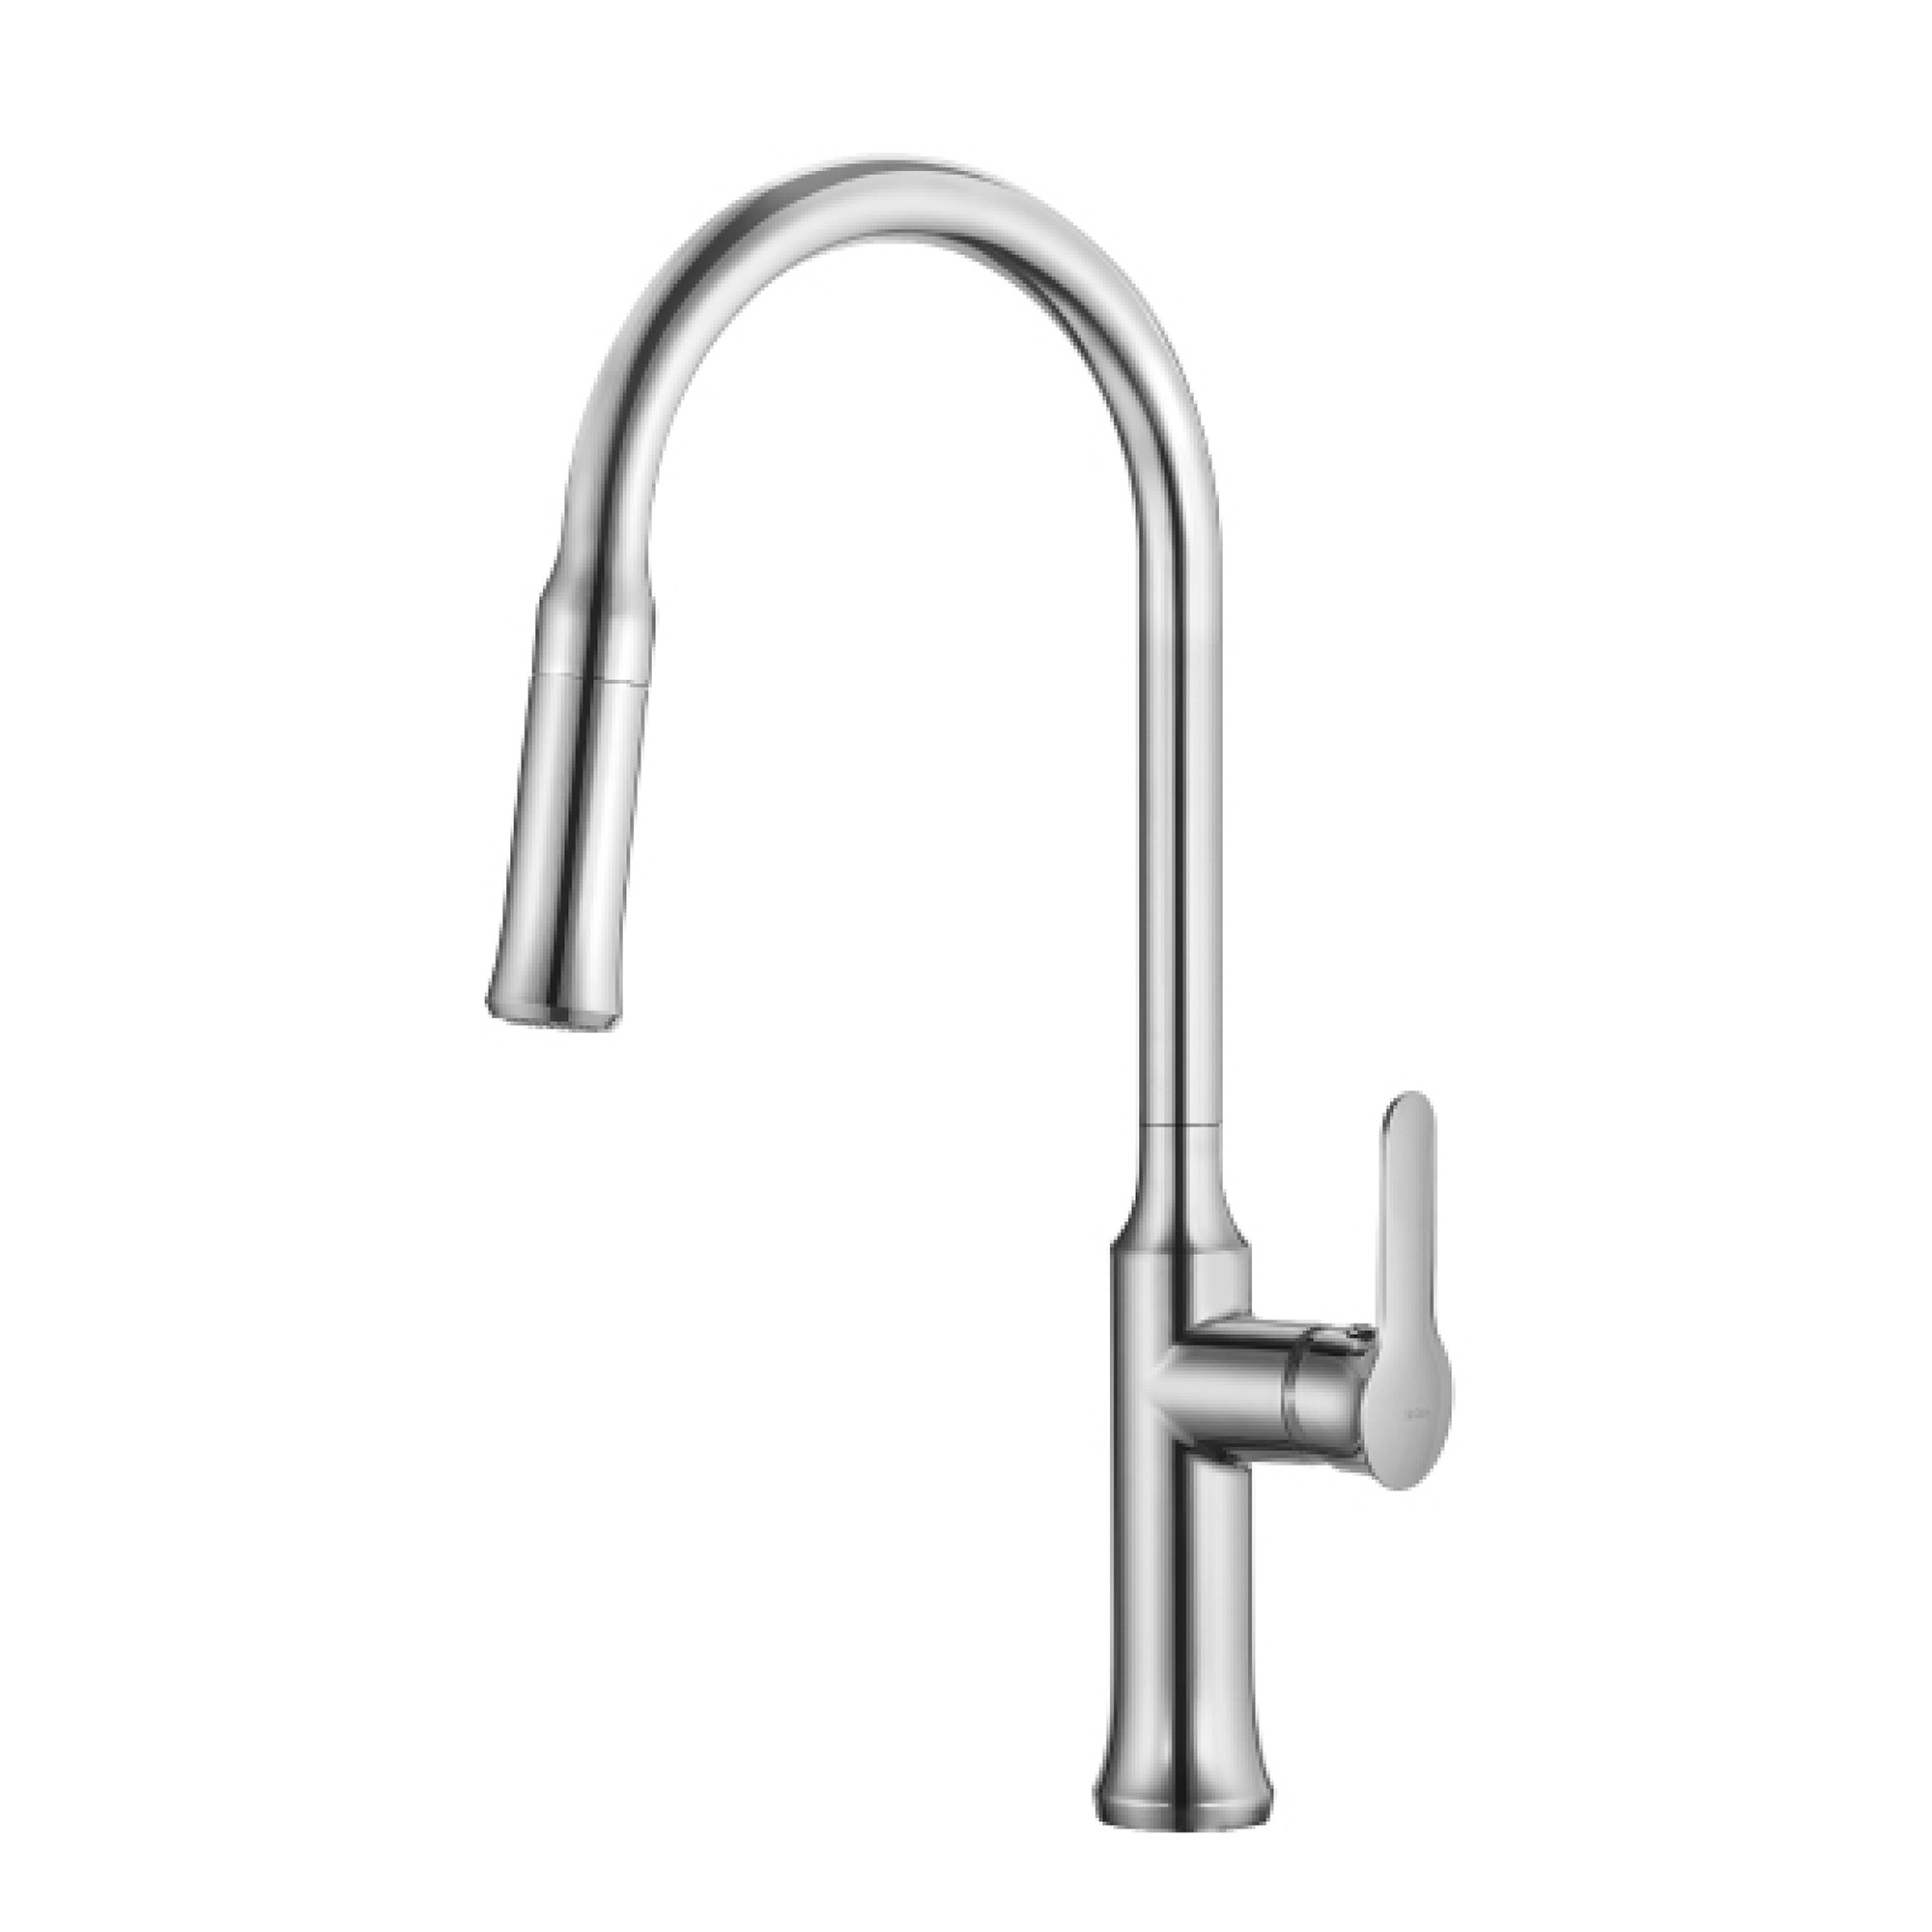 Fantastic delta cassidy kitchen faucet for kitchen faucet ideas with delta single handle kitchen faucet with spray